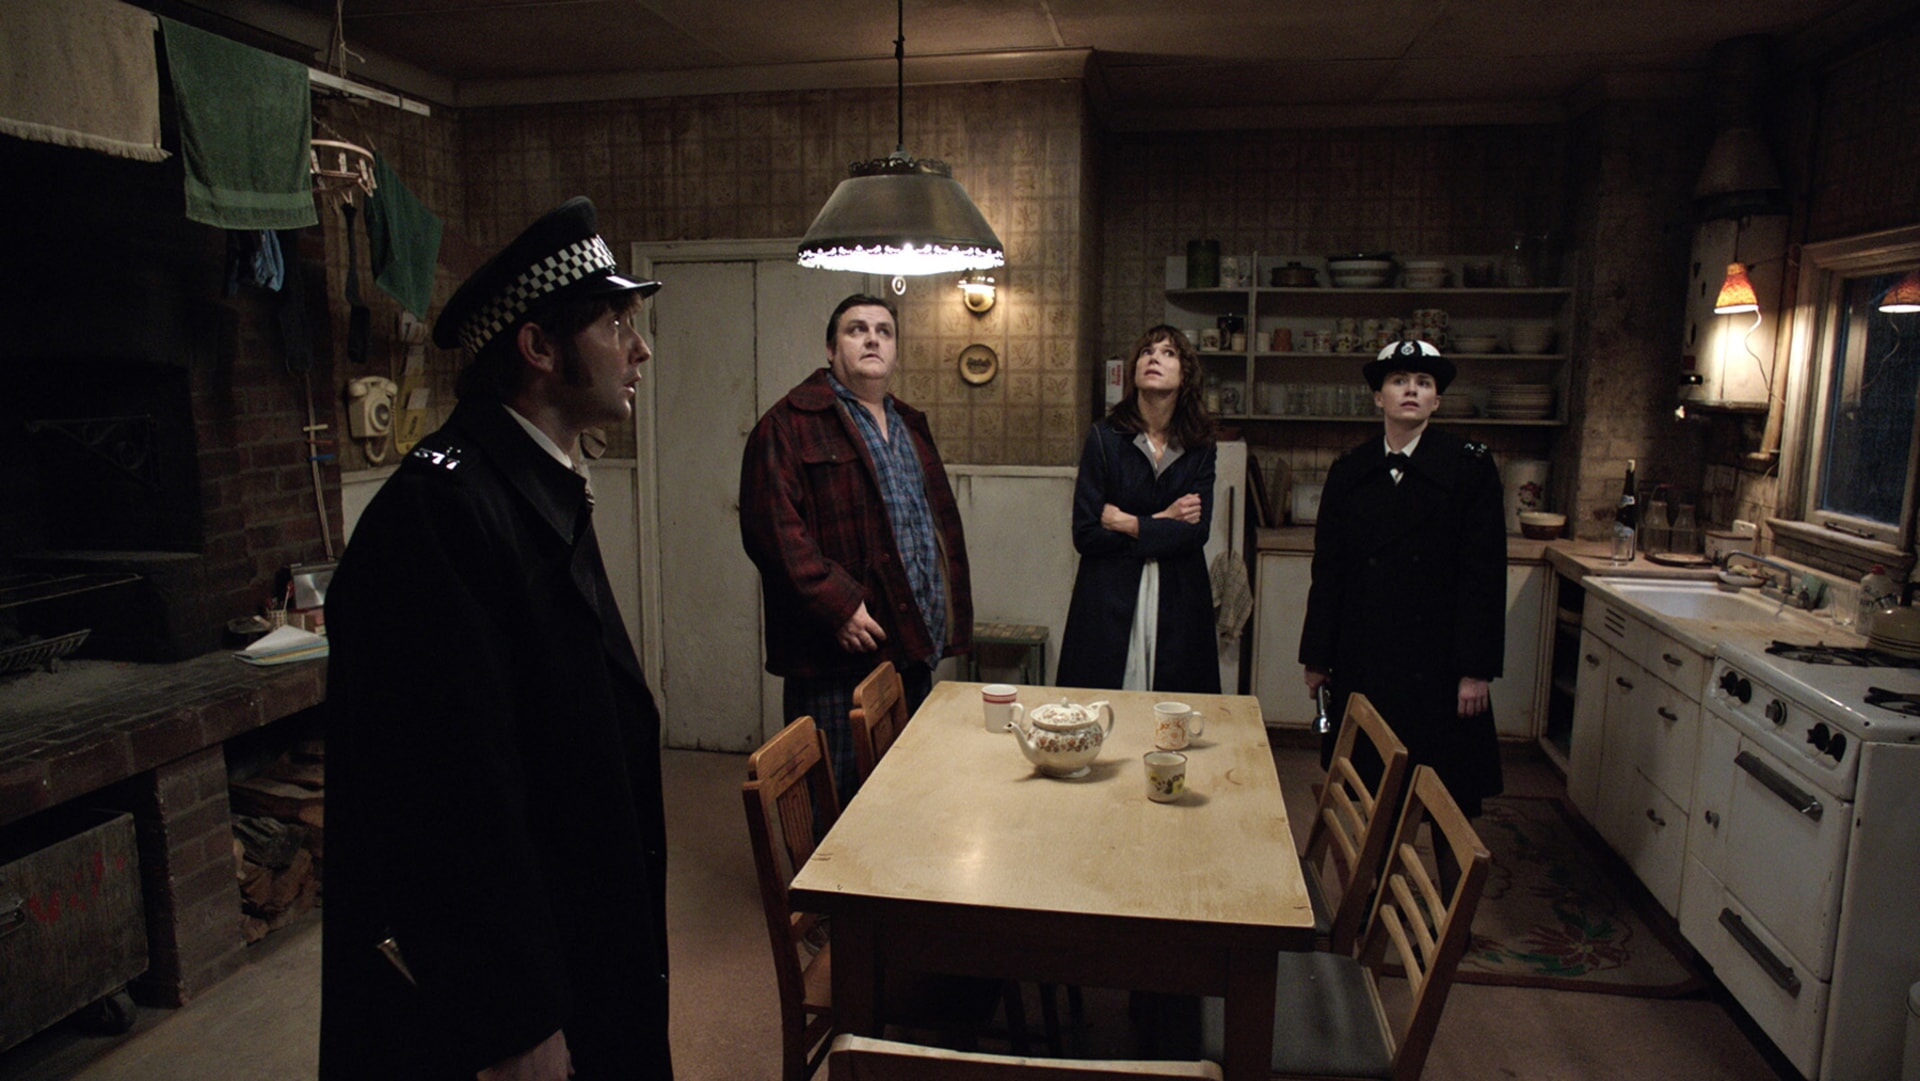 SIMON DELANEY as Vic Nottingham and FRANCES O'CONNOR as Peggy Hodgson standing in a kitchen looking up at the ceiling